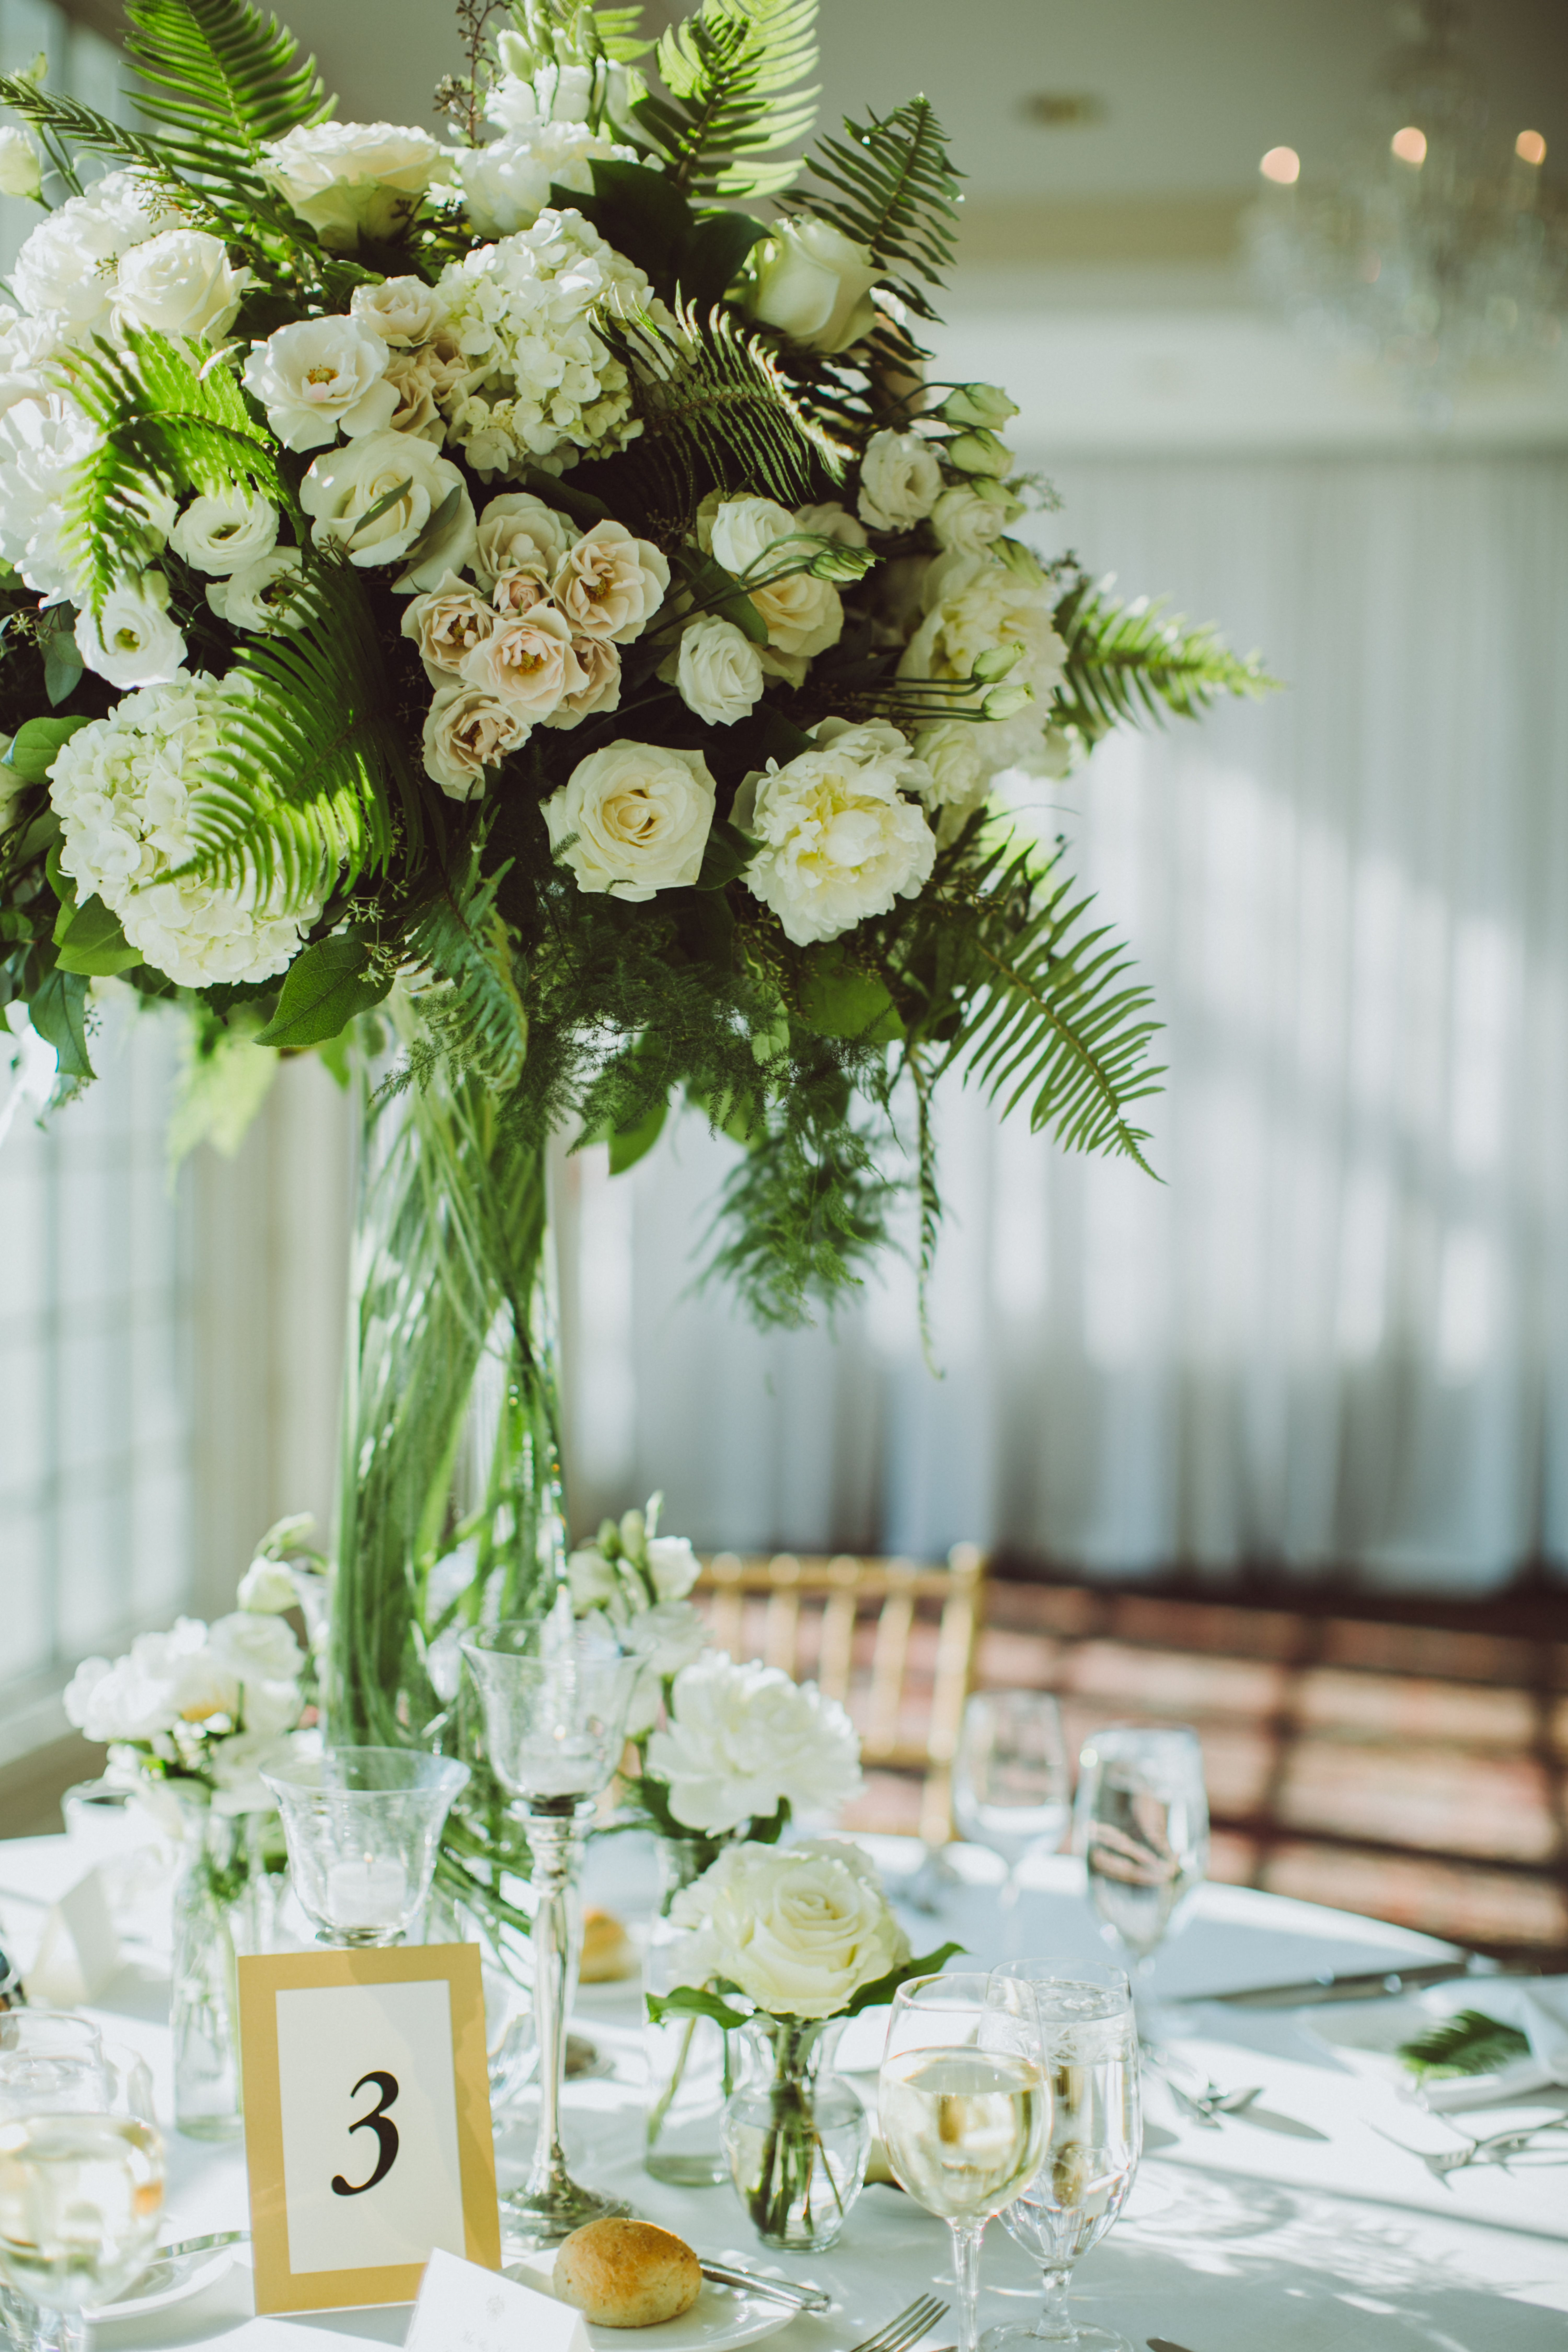 Tall, Natural Lisianthus and Greenery Centerpiece